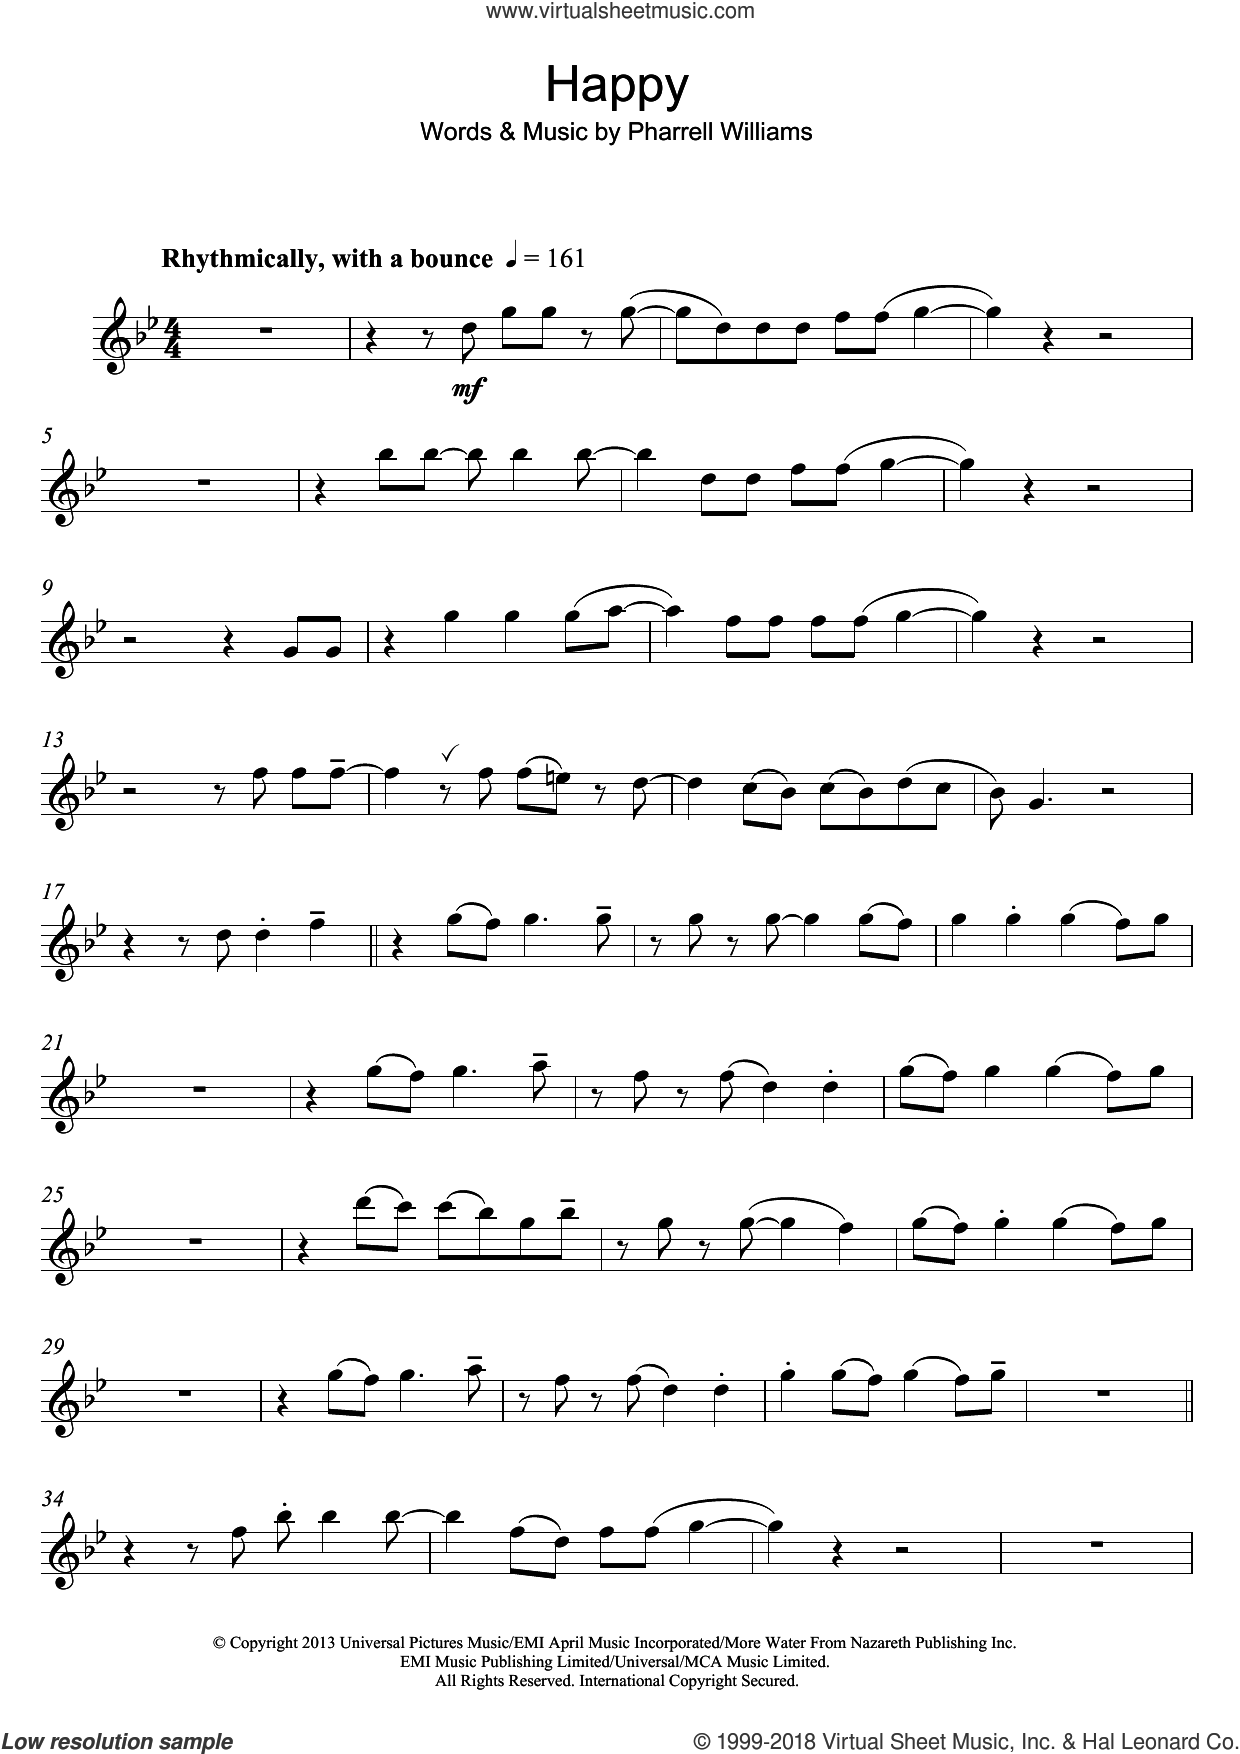 Happy sheet music for flute solo by Pharrell Williams, intermediate skill level